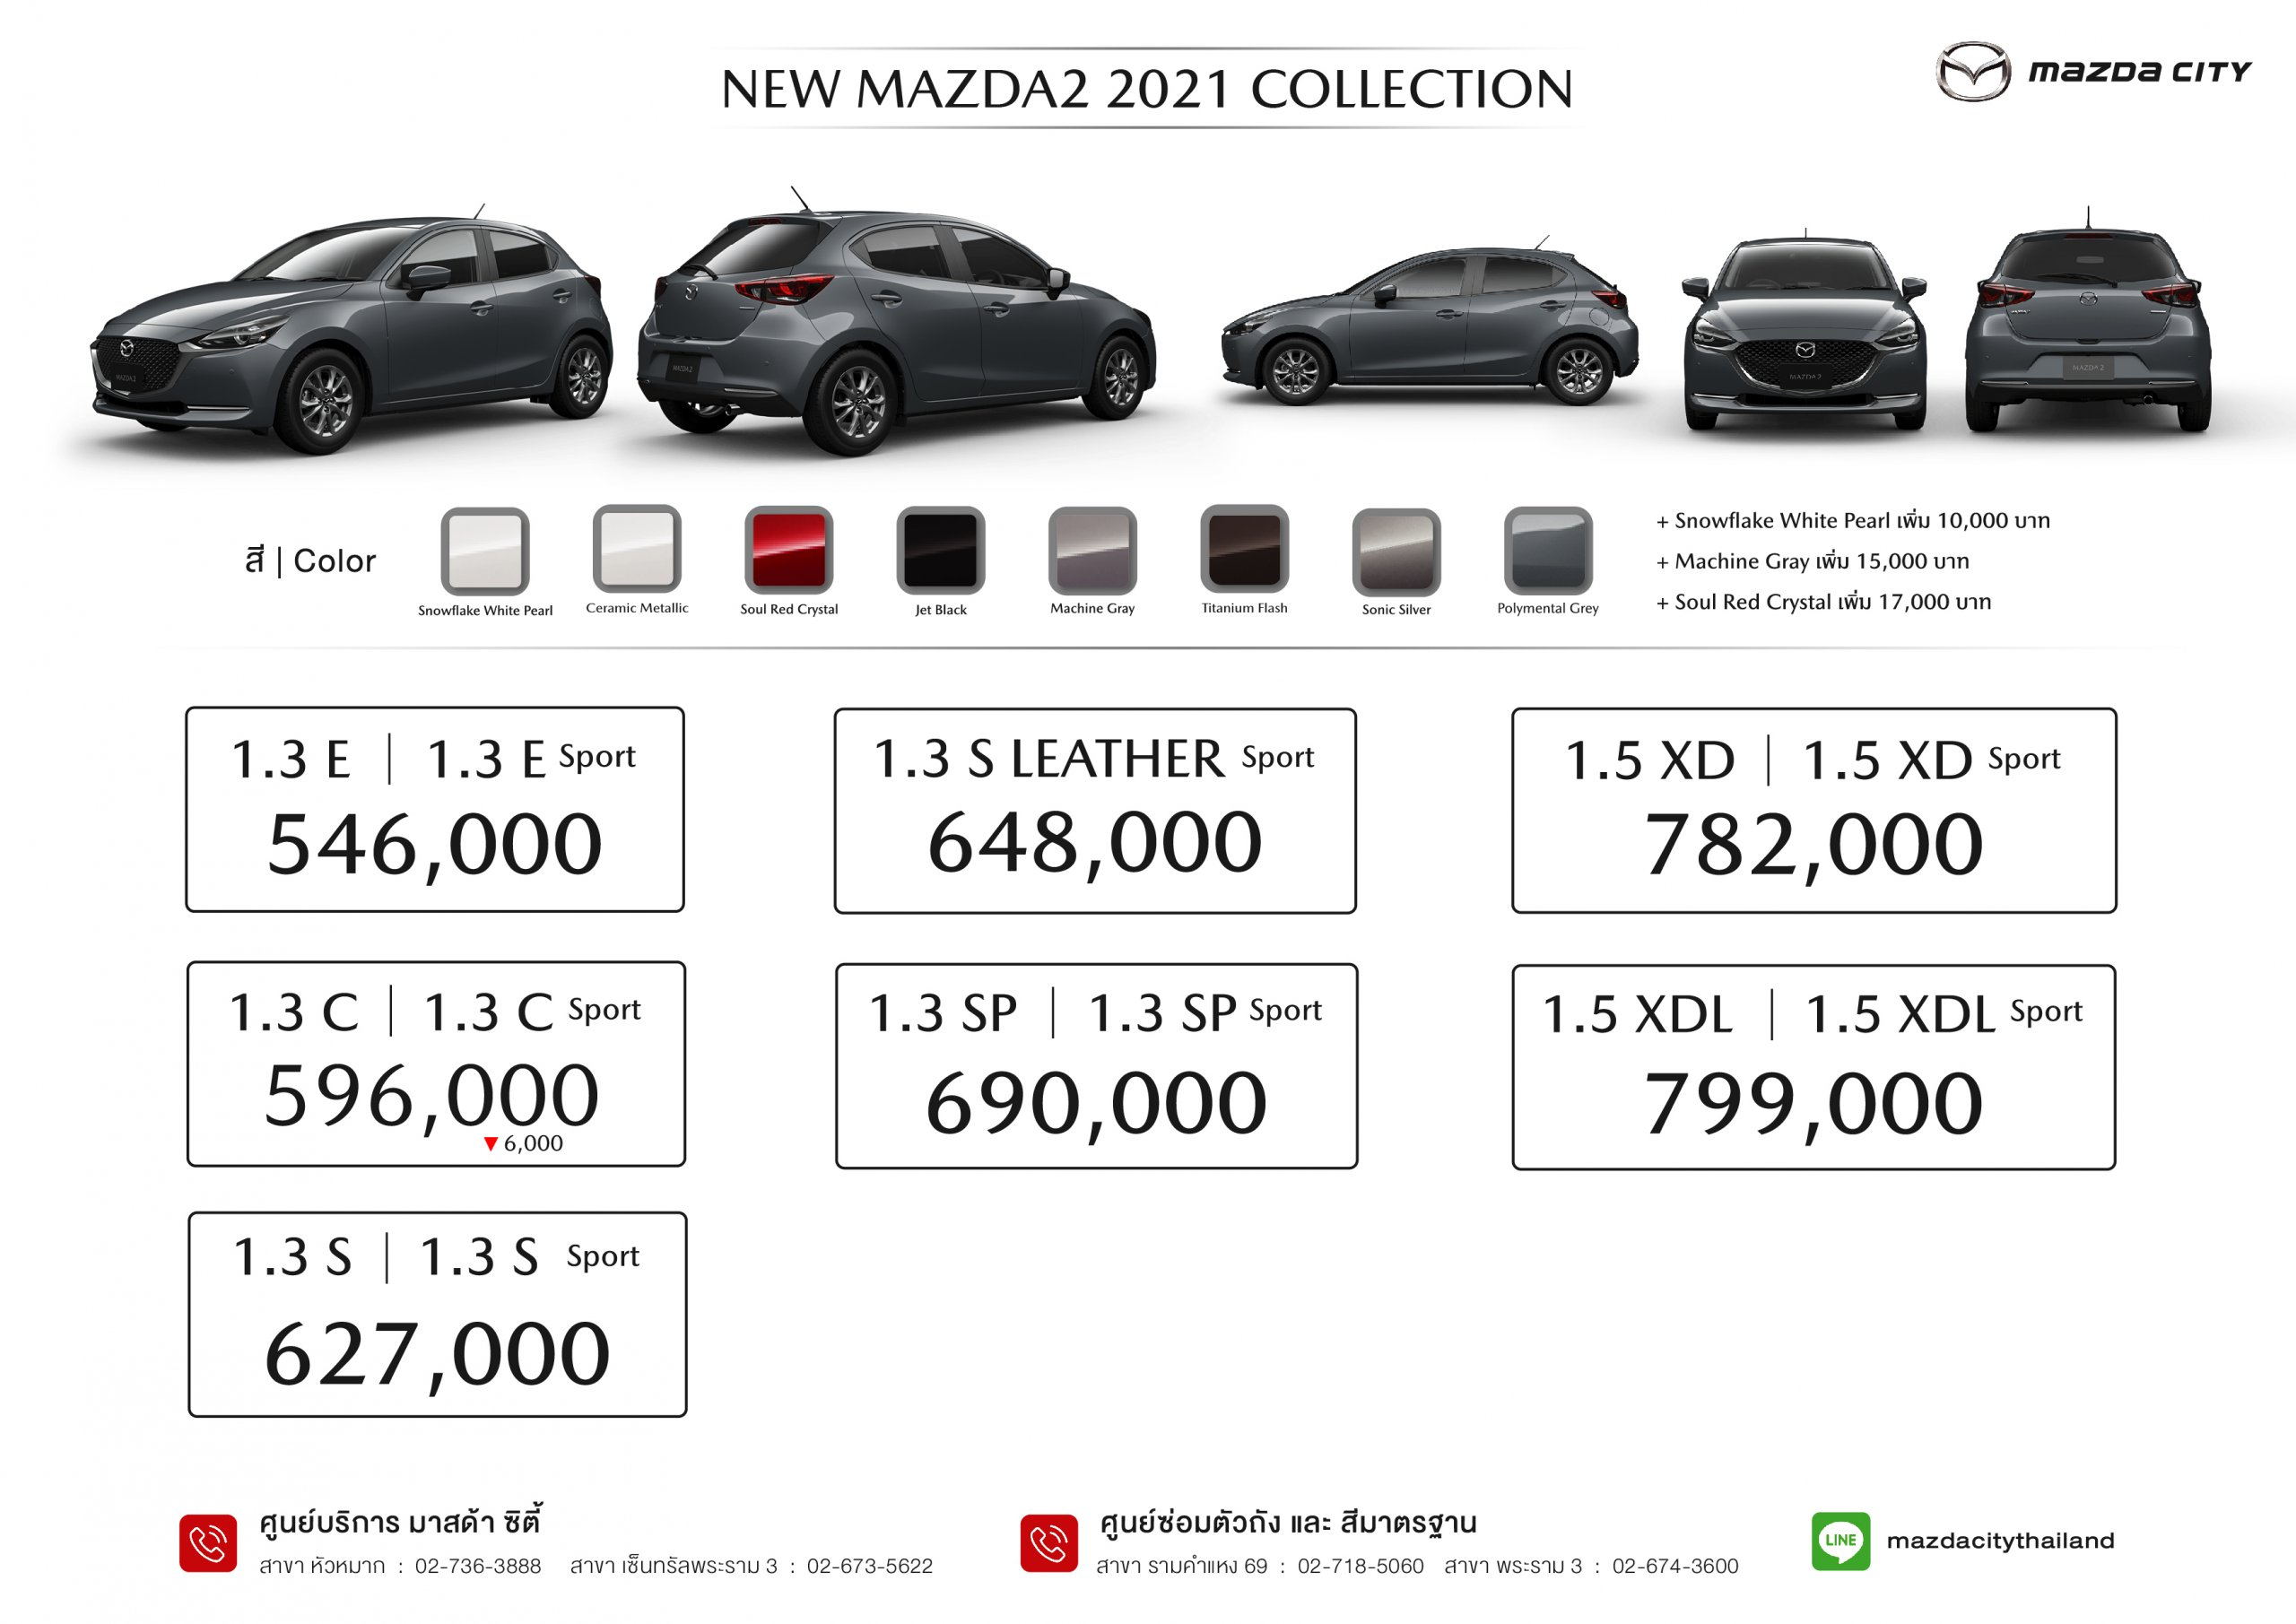 Spectification - New Mazda2 (2021Collection) - Pricelist_W